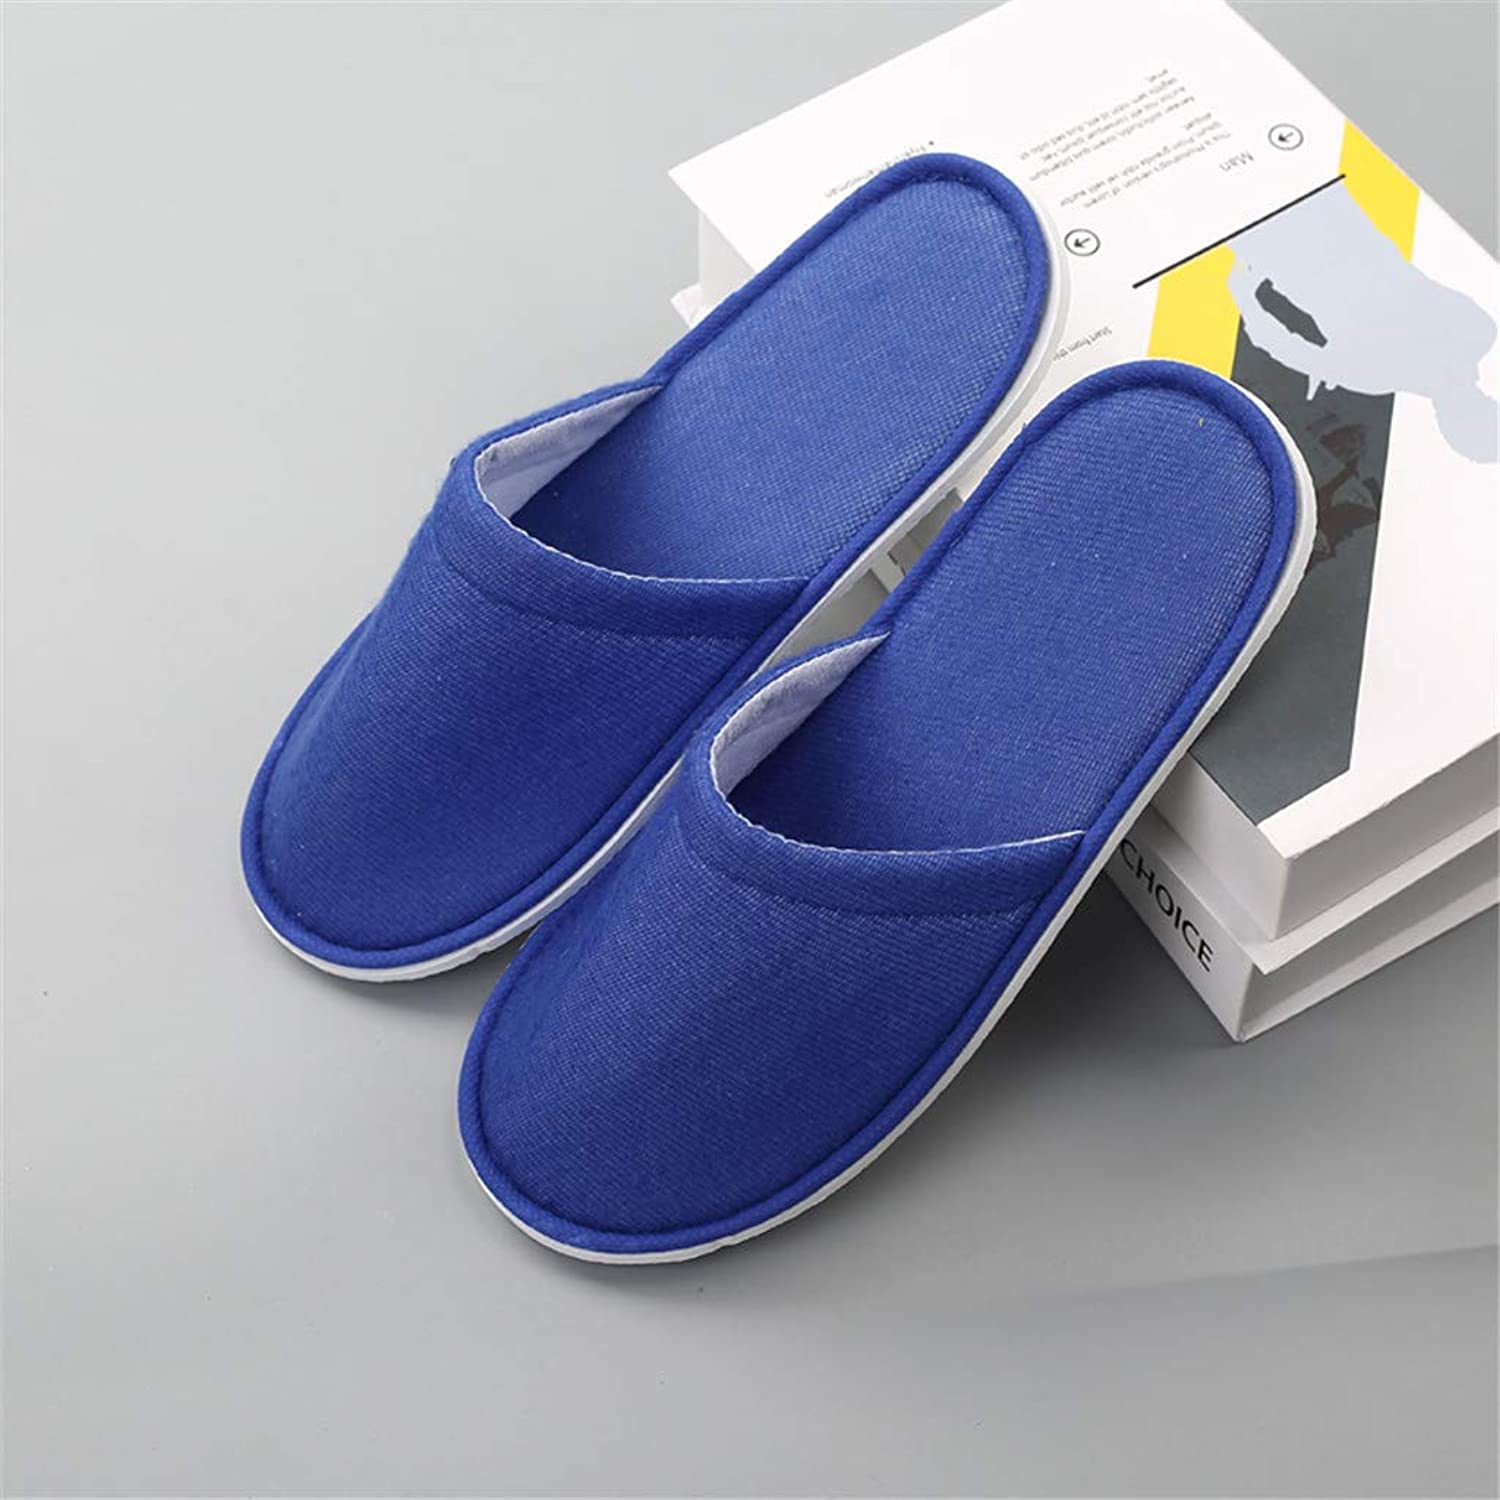 10 Pairs,Spa Slippers 6Mm EVA Sole Clubhouse Beauty Salon Slippers Hospitality Disposable Slippers,bluee